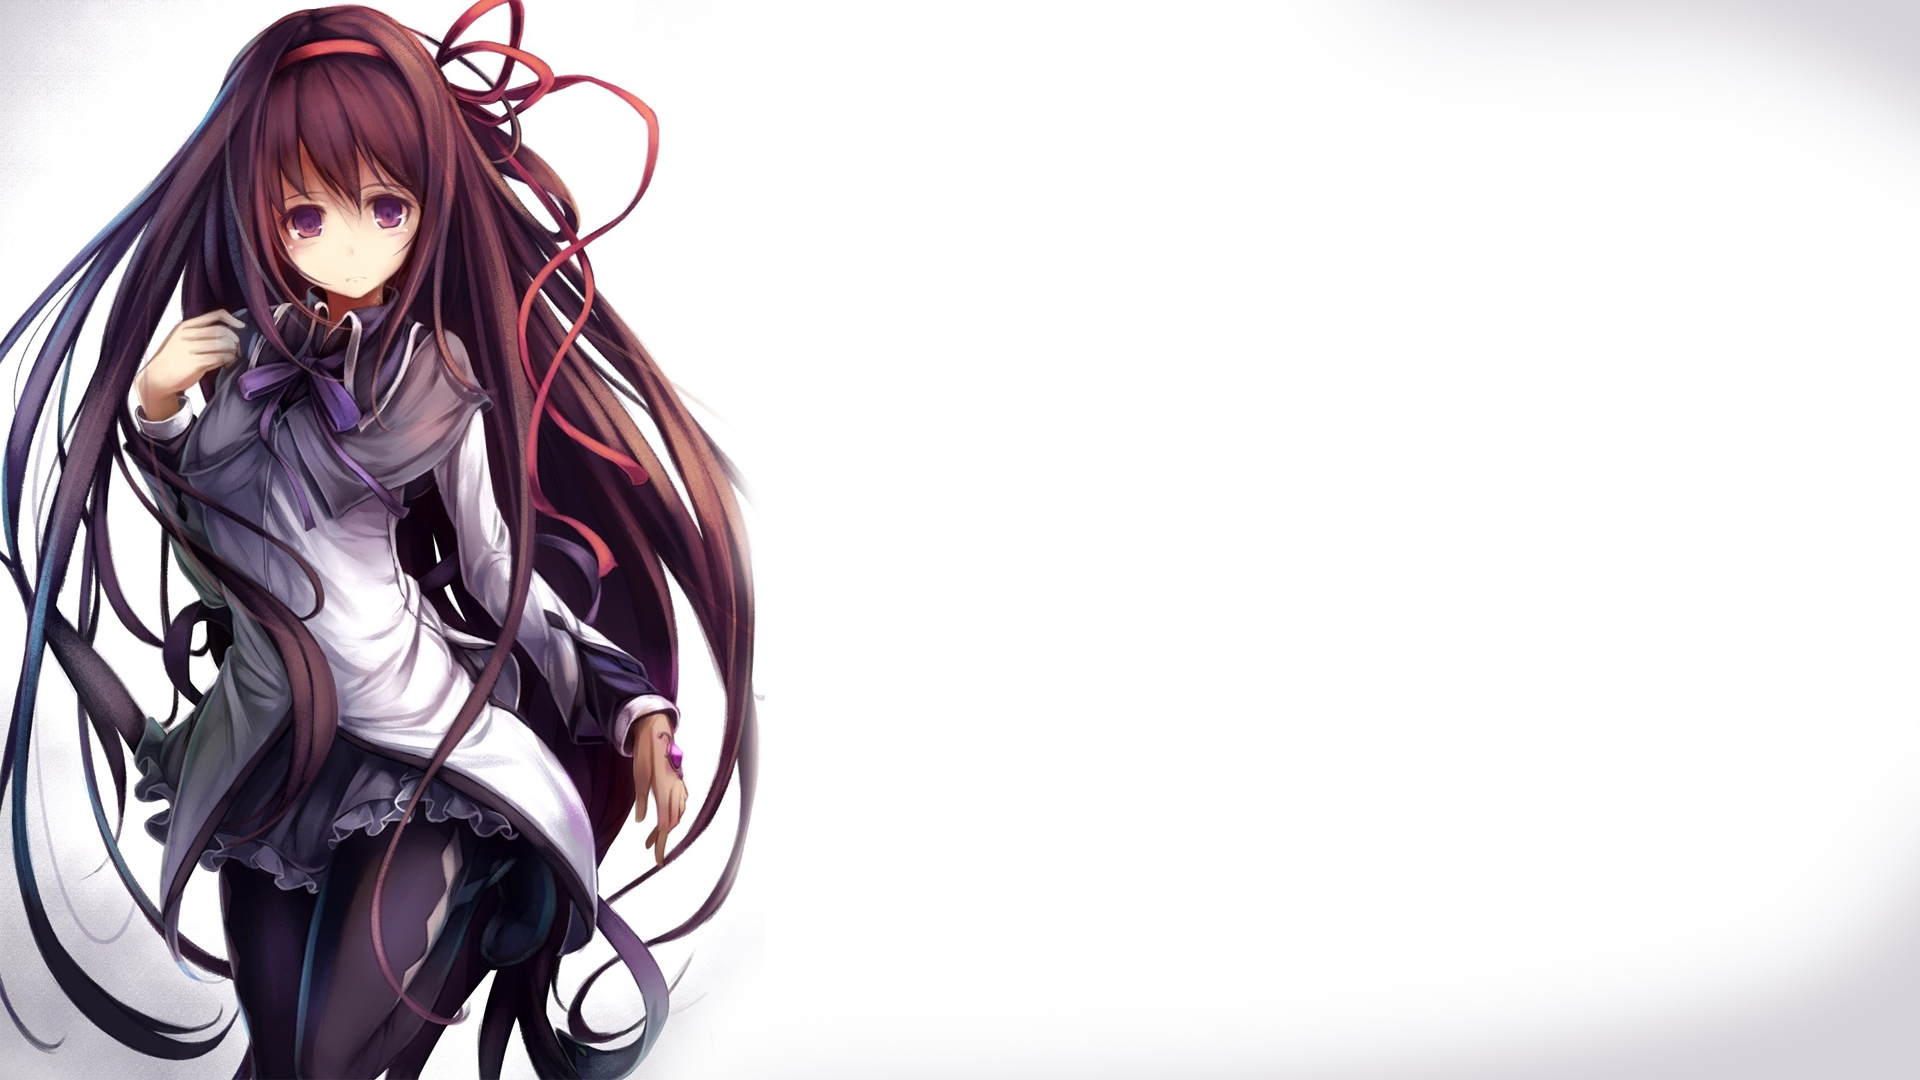 anime-girls-hd-amazing-wide-wallpaper-wp3602543